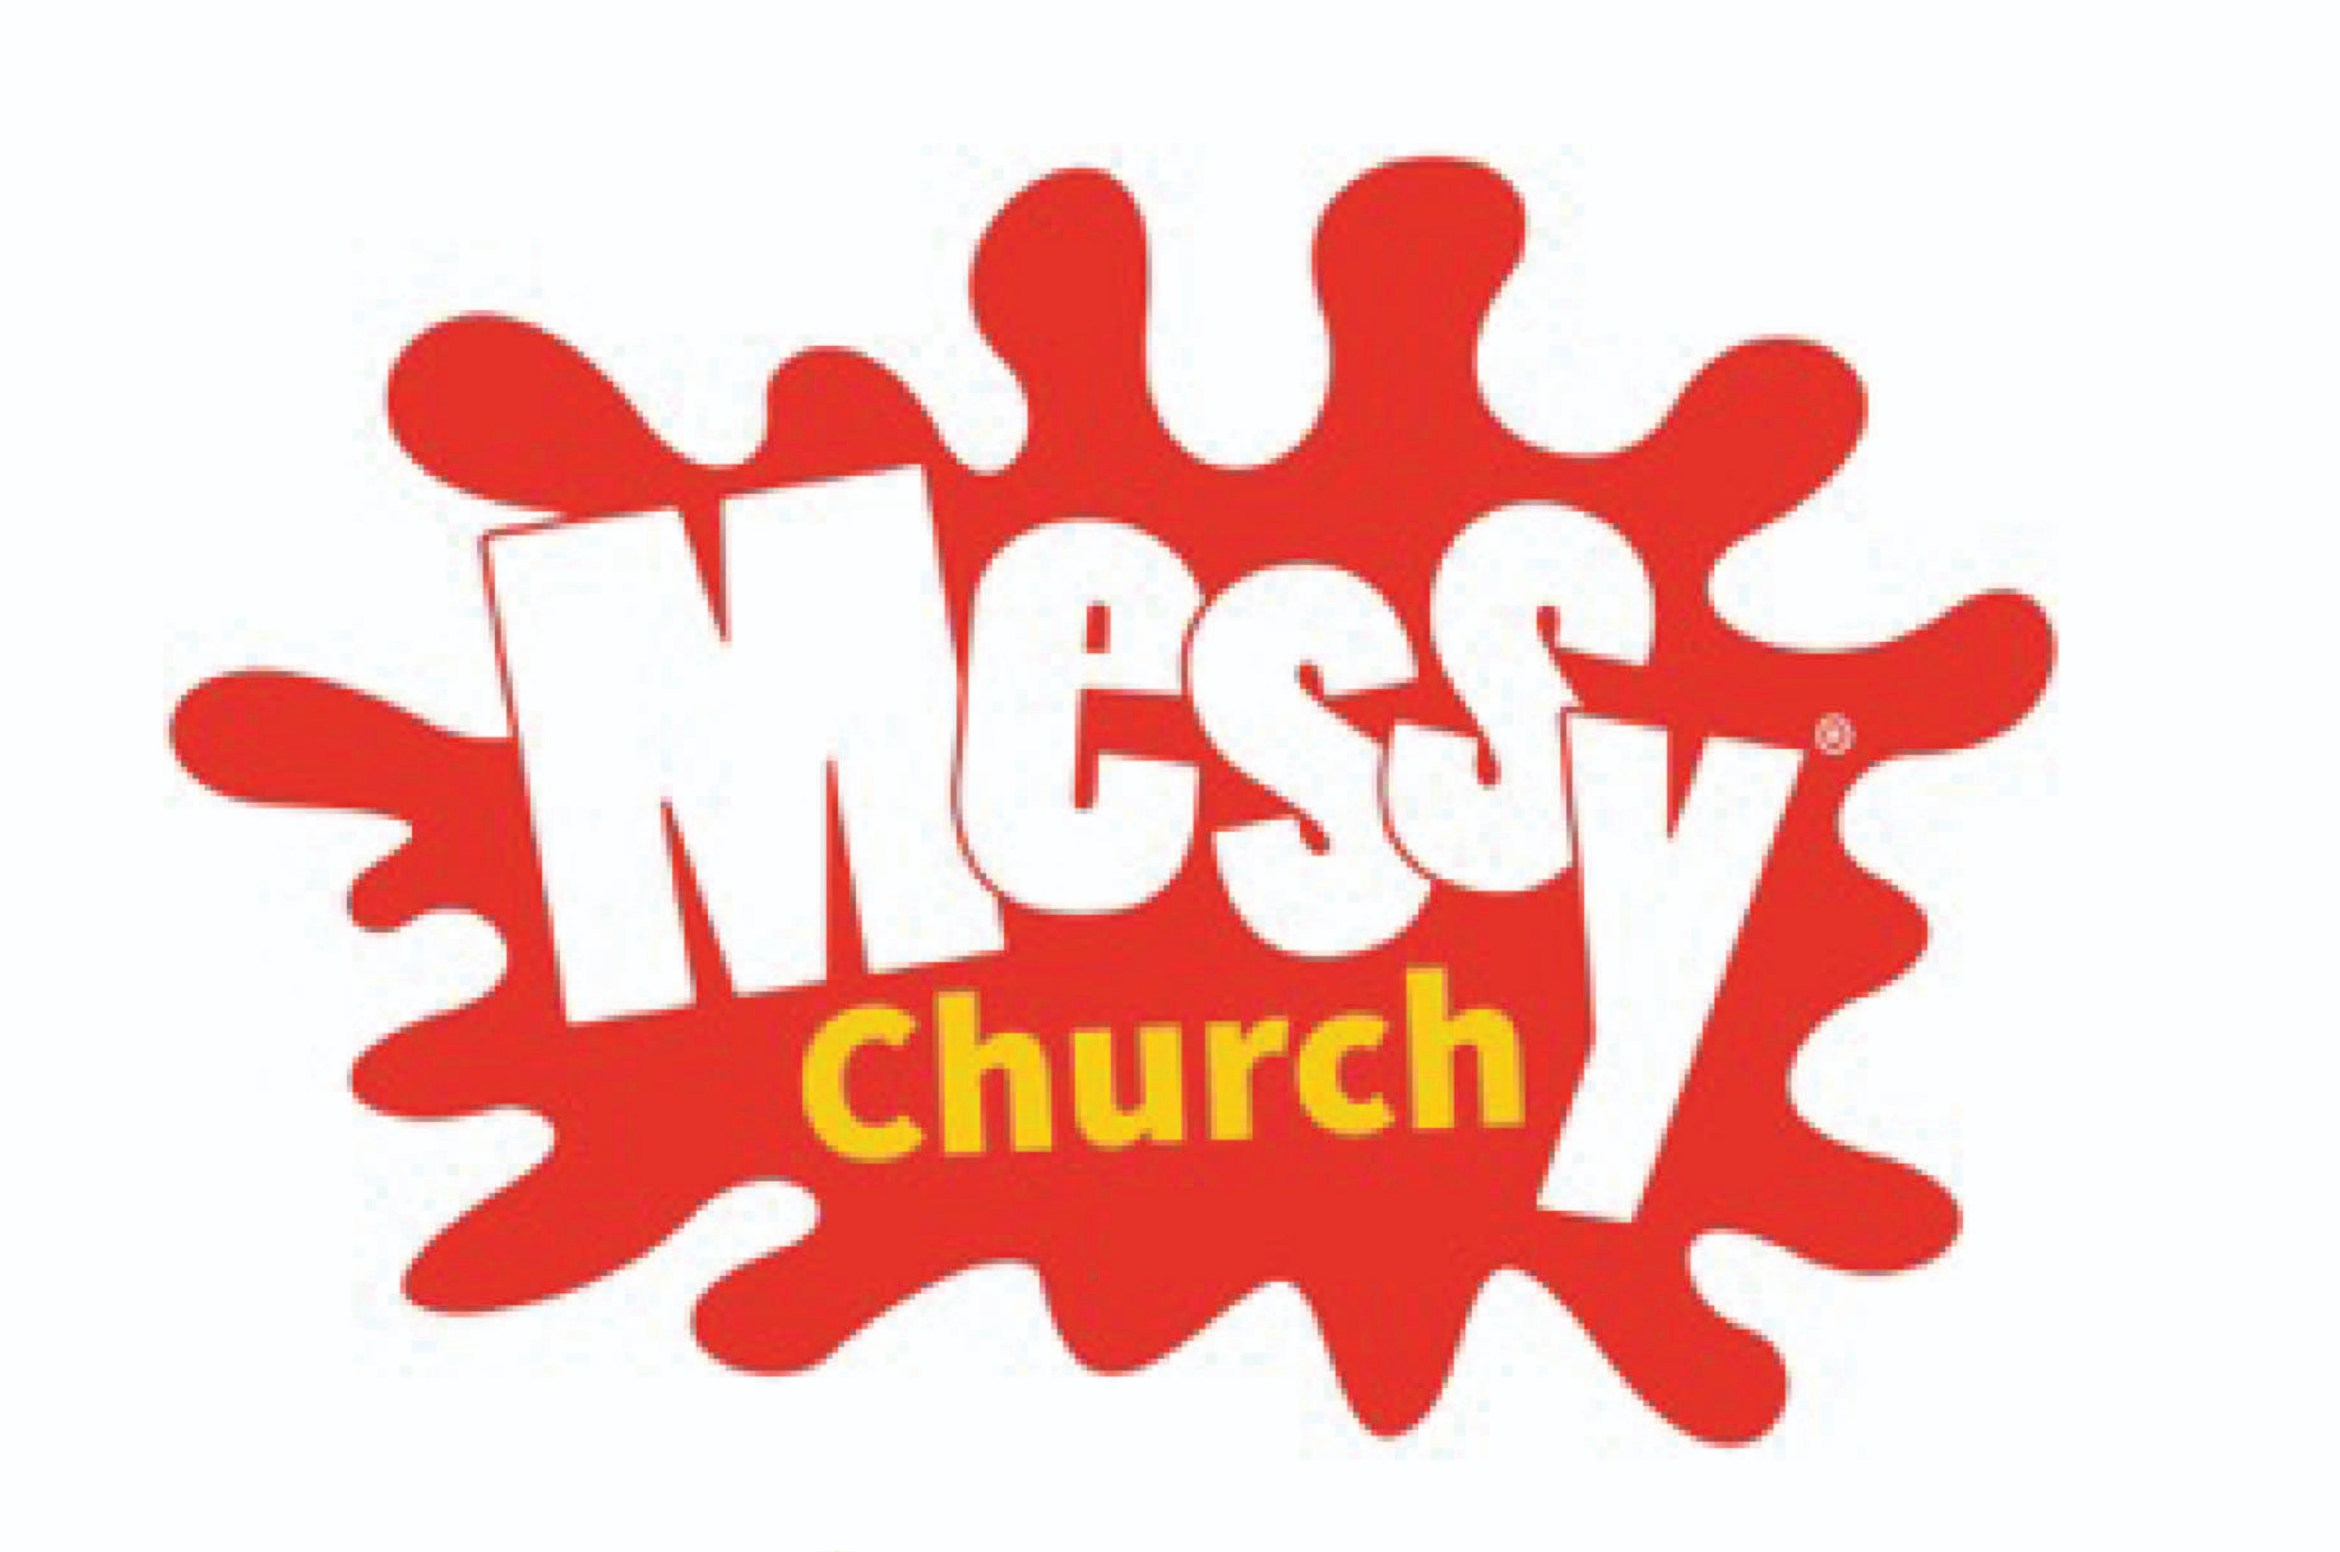 messyChurch-6-2543156495-1537890414179.jpg